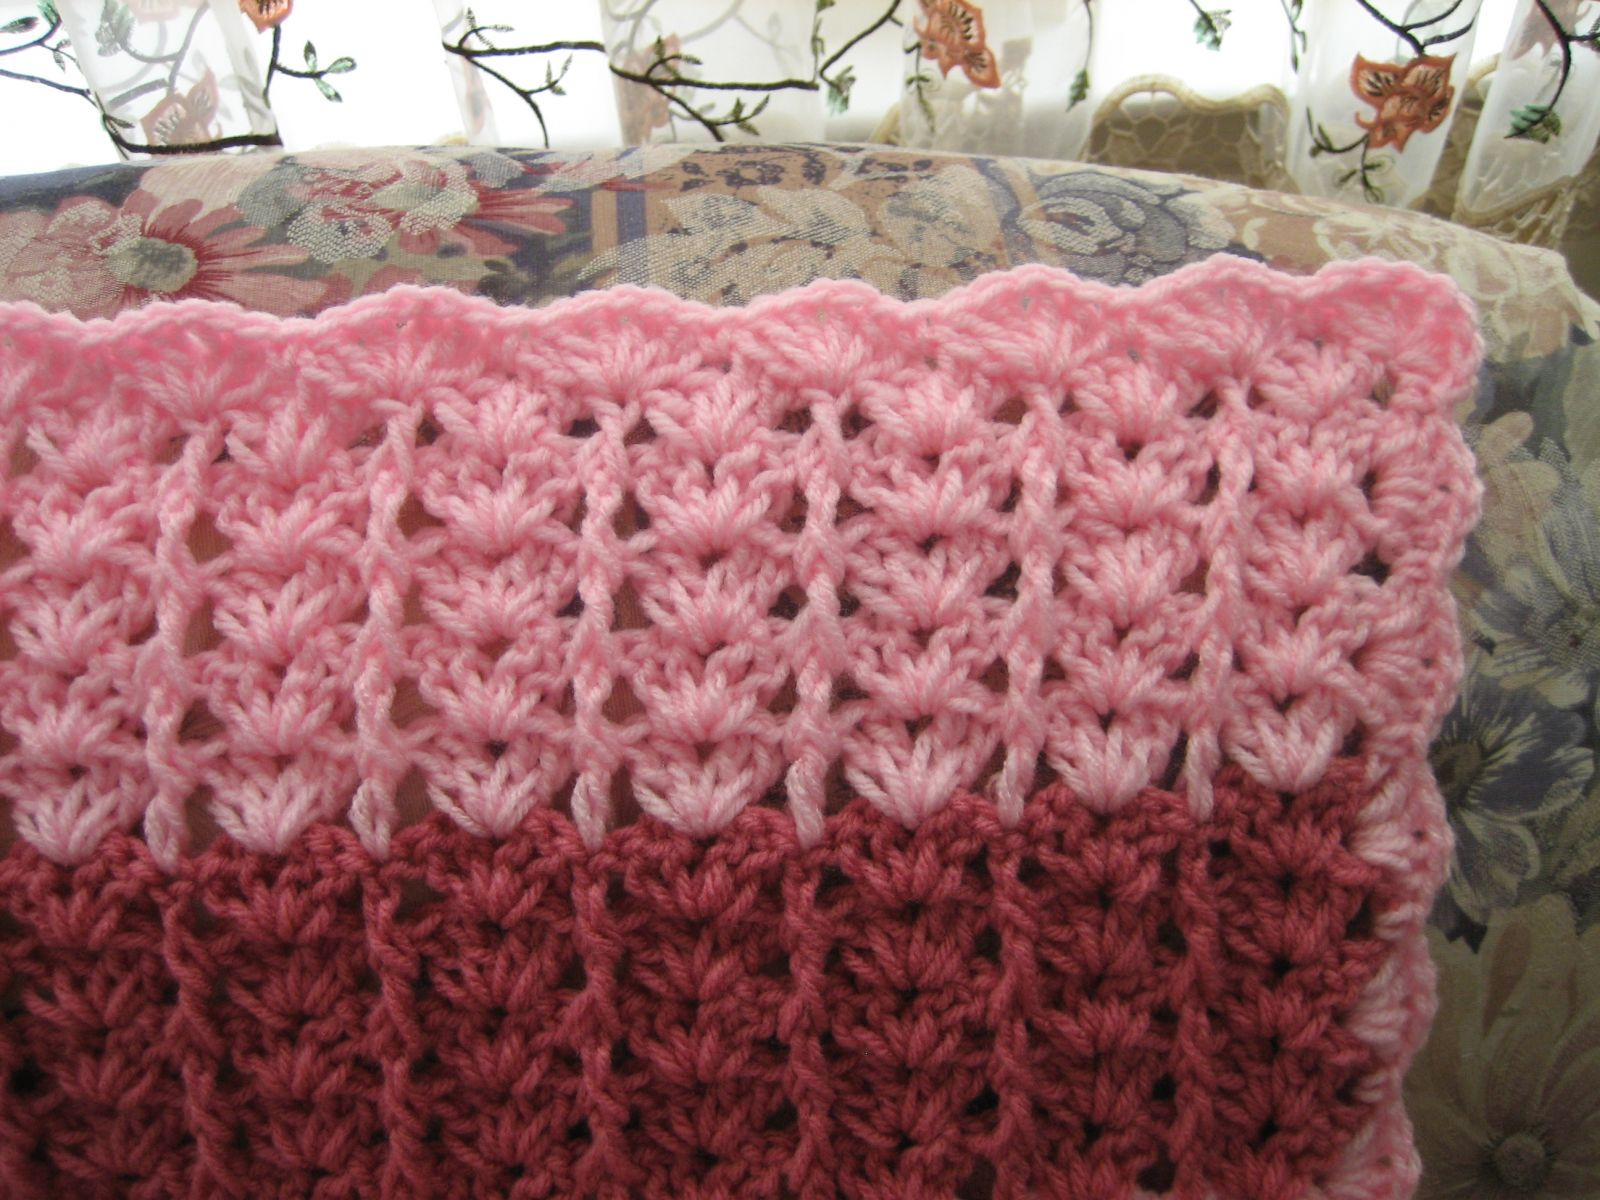 Luxury Lacy Shades Of Pink Shells Afghan Lacy Crochet Stitches Of New 49 Photos Lacy Crochet Stitches